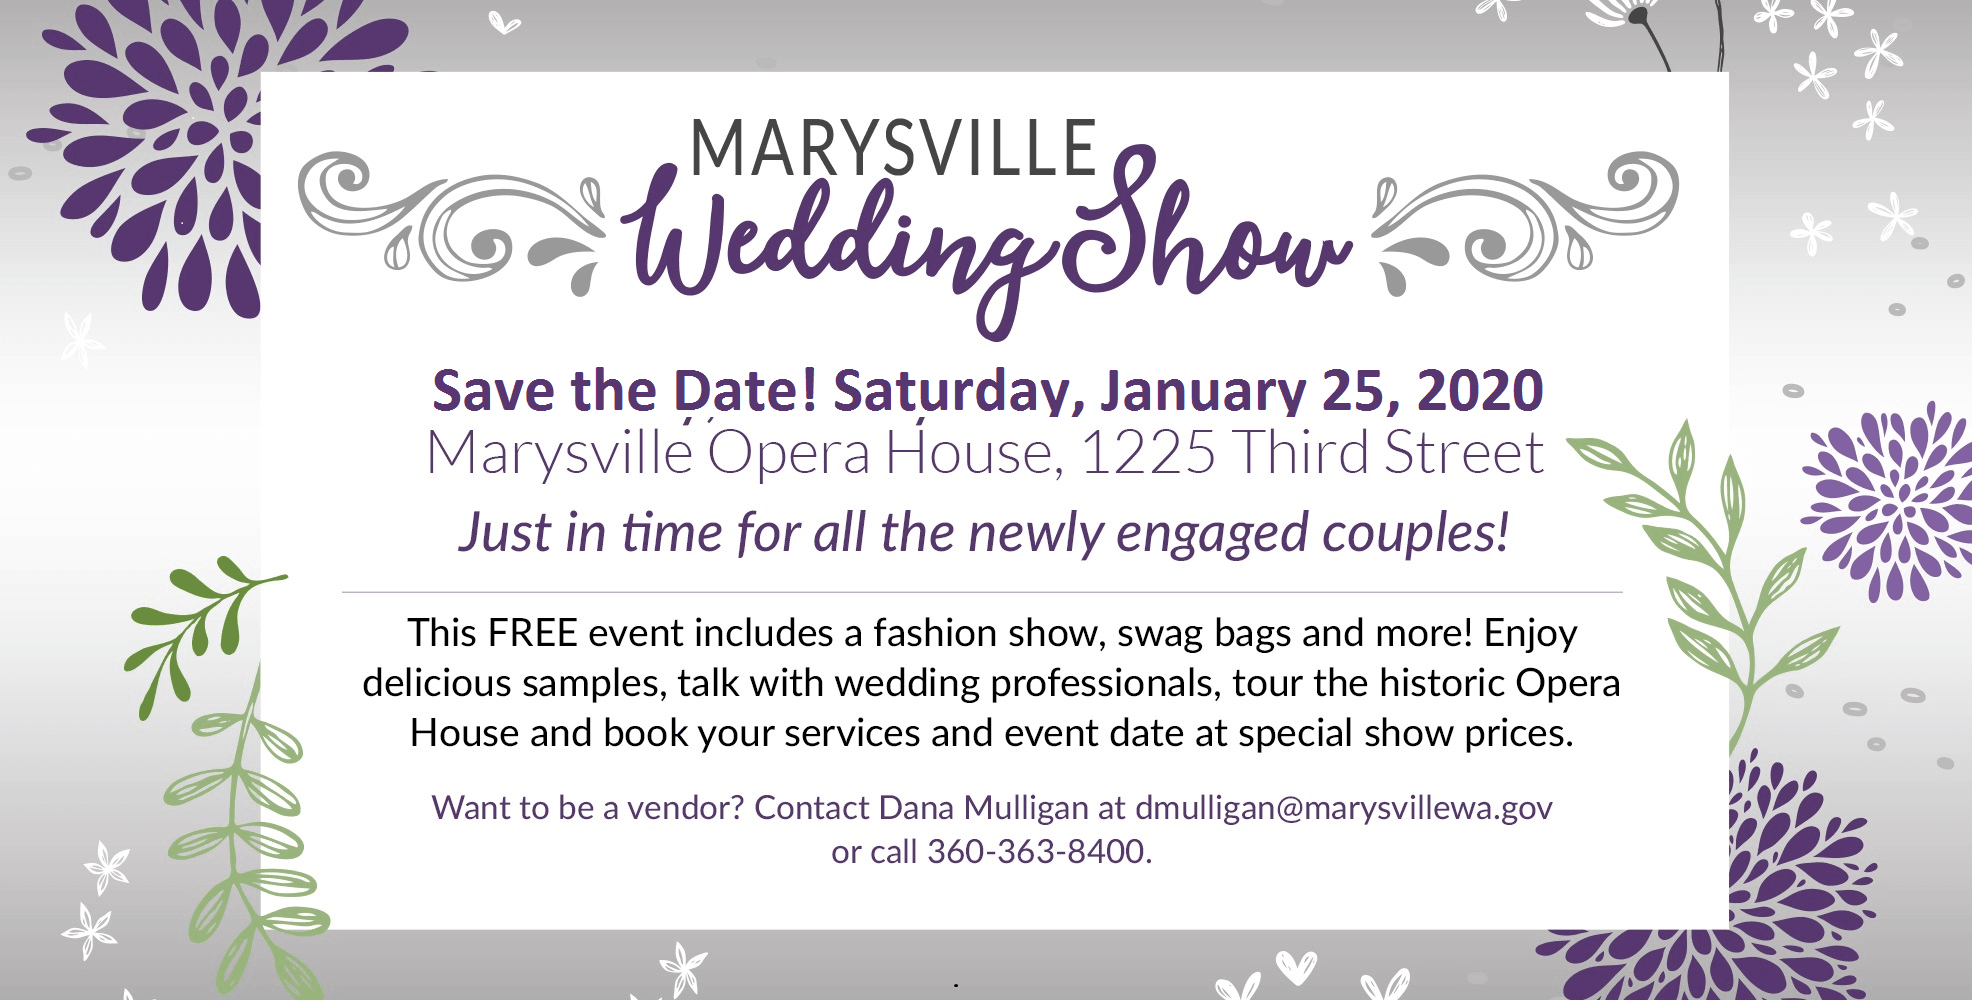 Marysville Wedding Show Tile_save the date 2020